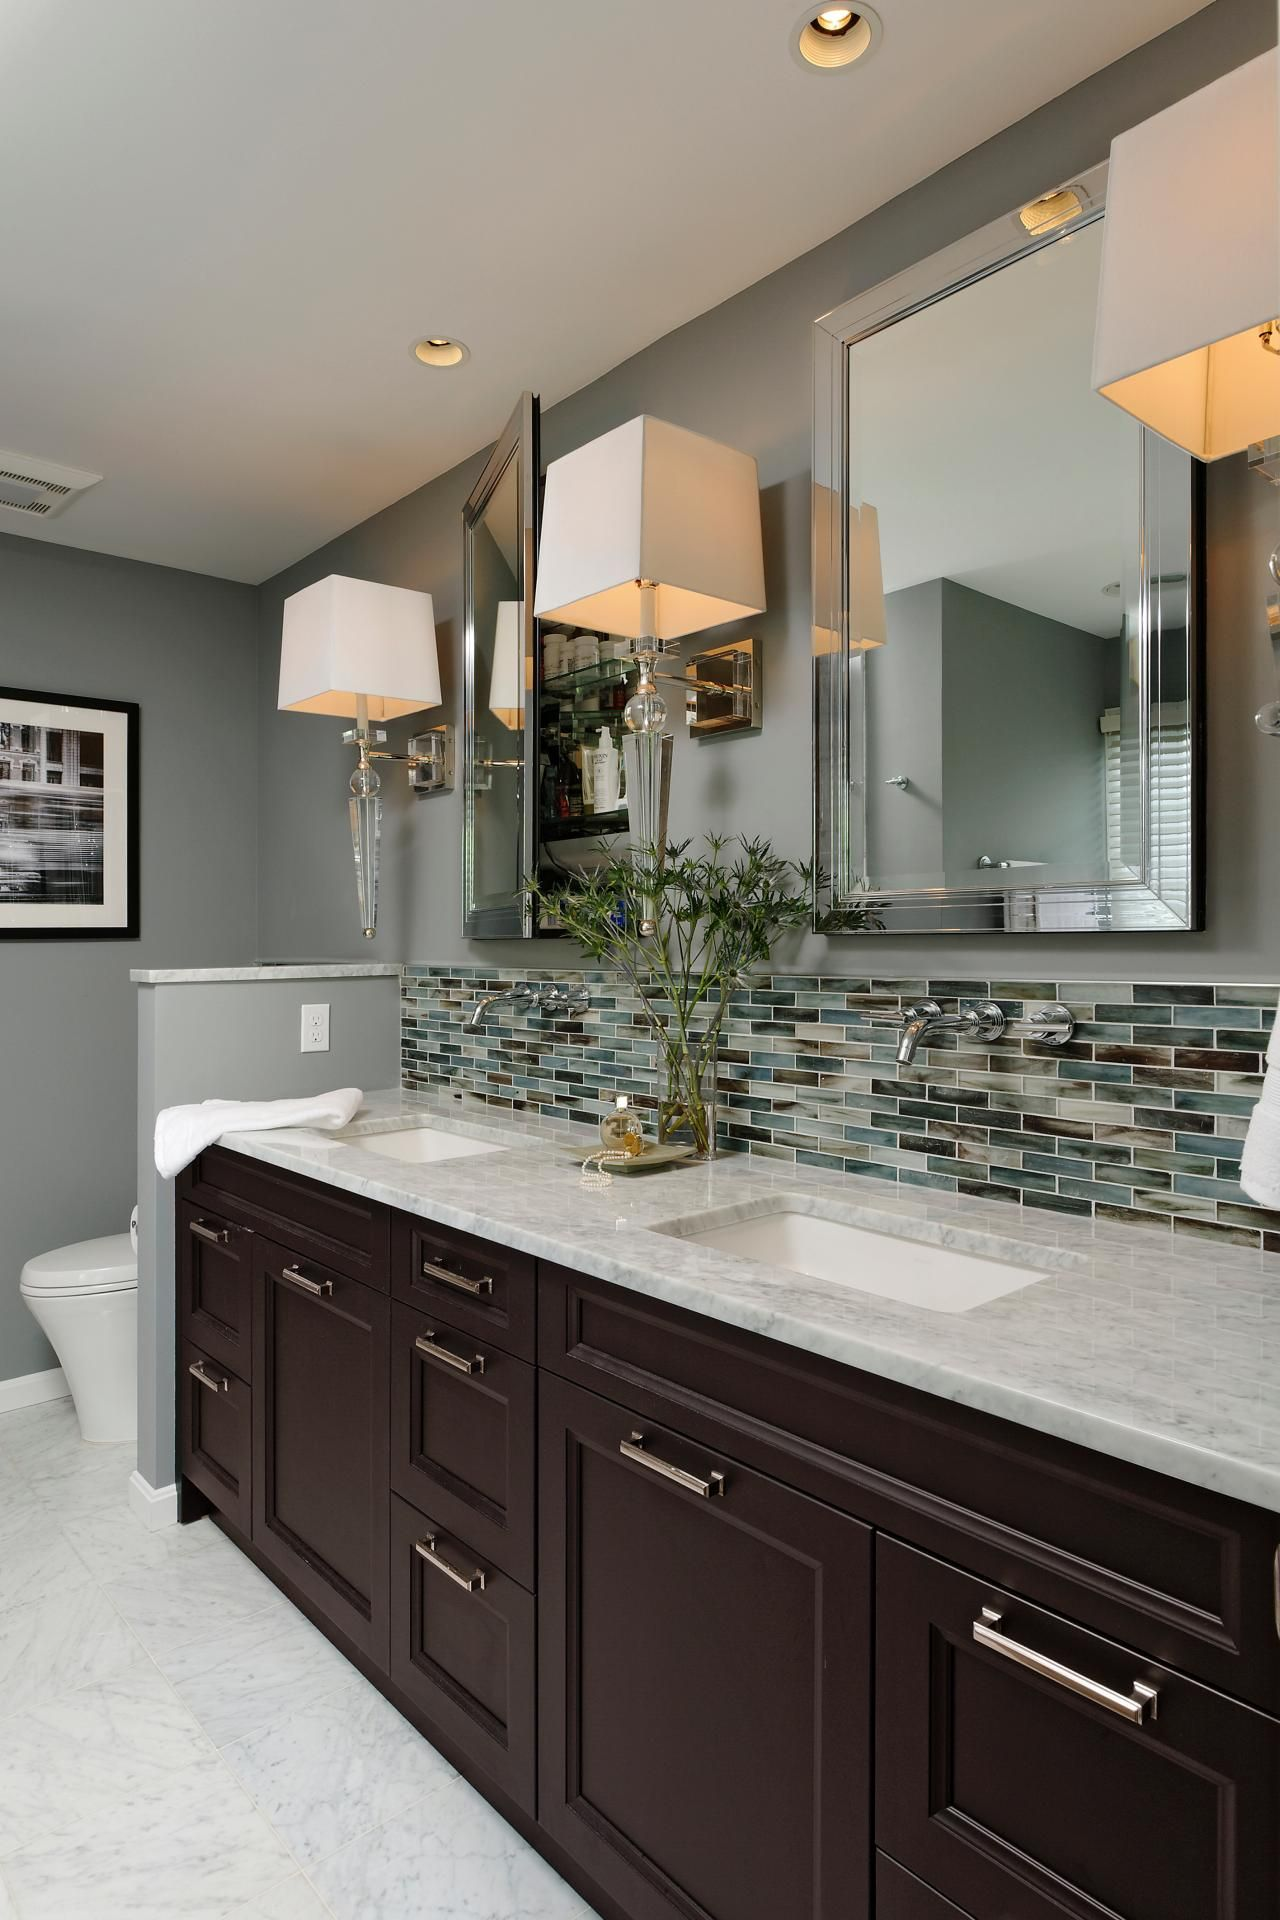 This Gray Contemporary Bathroom Features A Doublevanity Design With A  Carrera Marble Countertop,